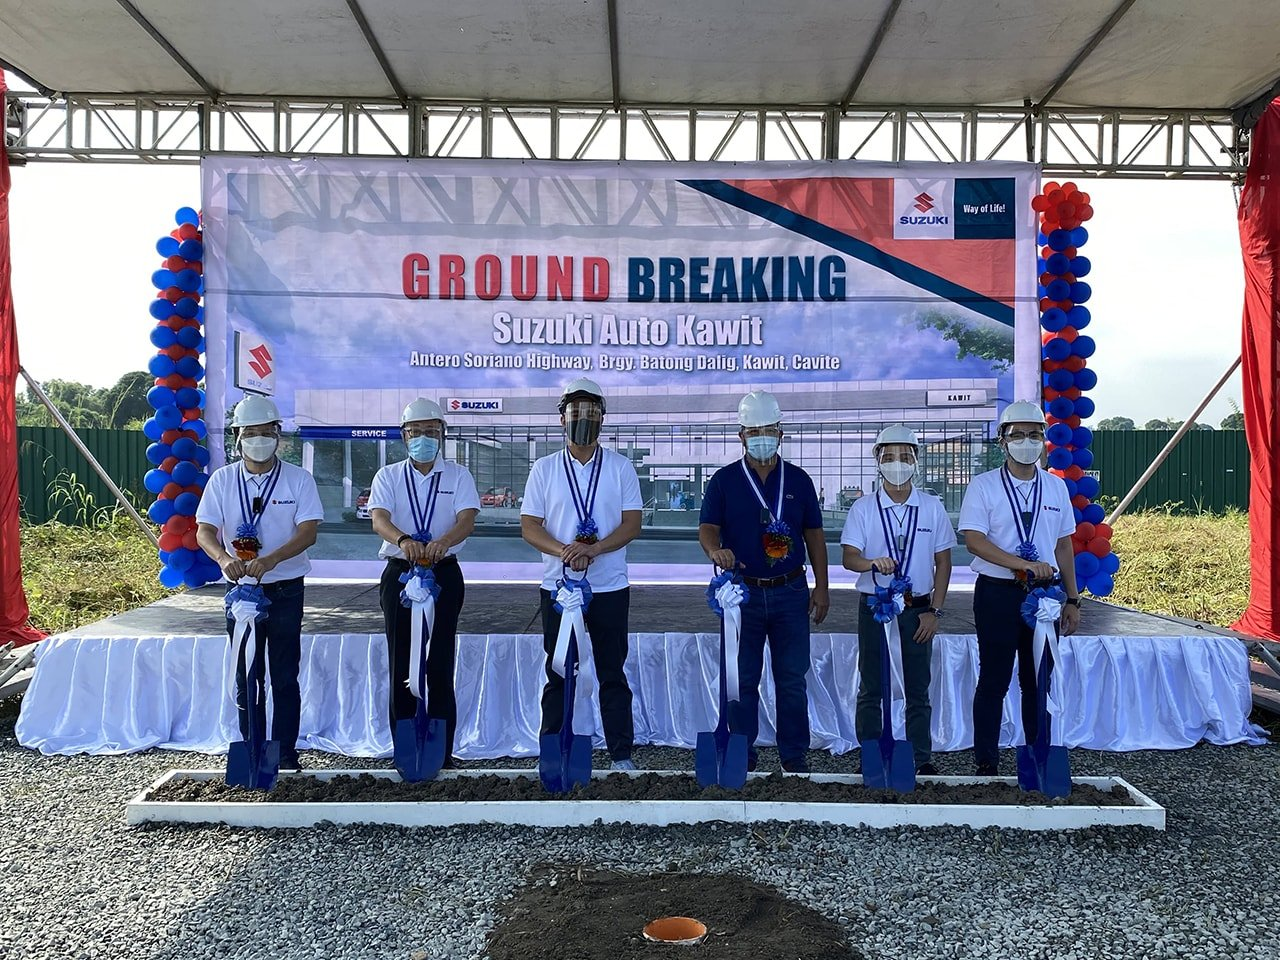 Suzuki Philippines Expands to the South of Luzon with New Dealership Rising in Kawit, Cavite